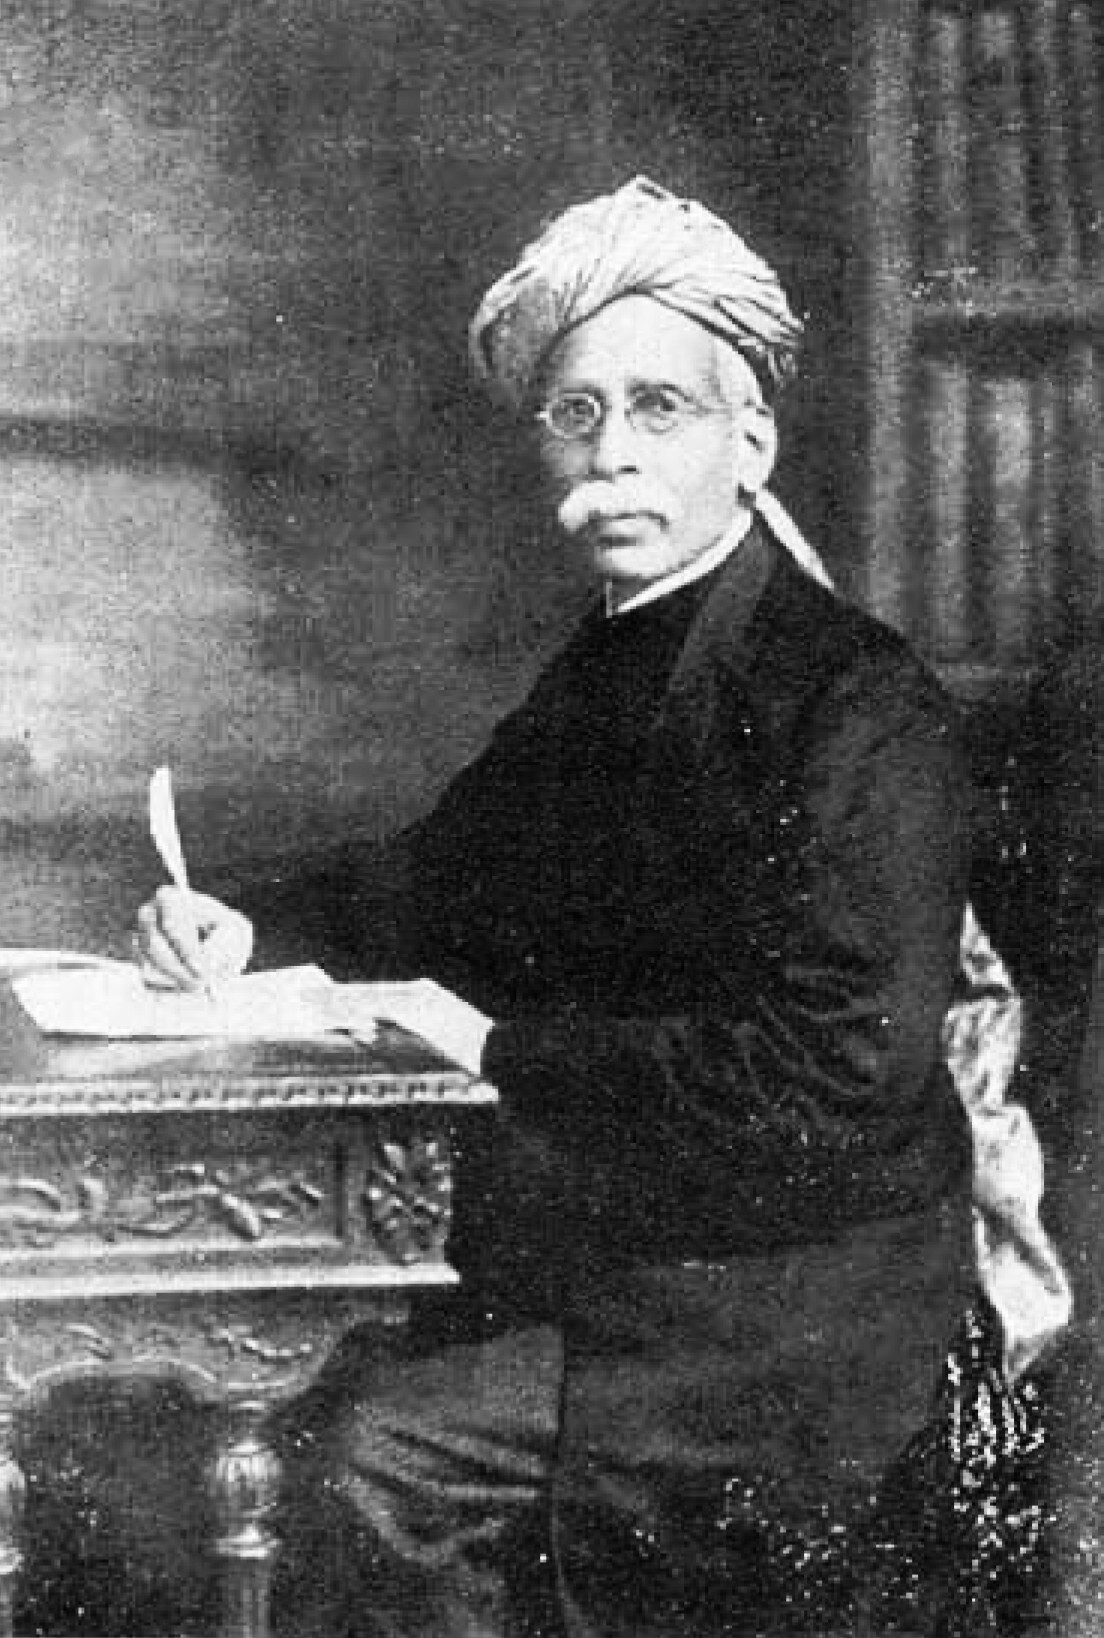 utkal gourab madhusudhan das Includes utkal divas photos, utkal divas wallpapers the movement was more intensed with the leadership of utkal gourab madhusudan das.